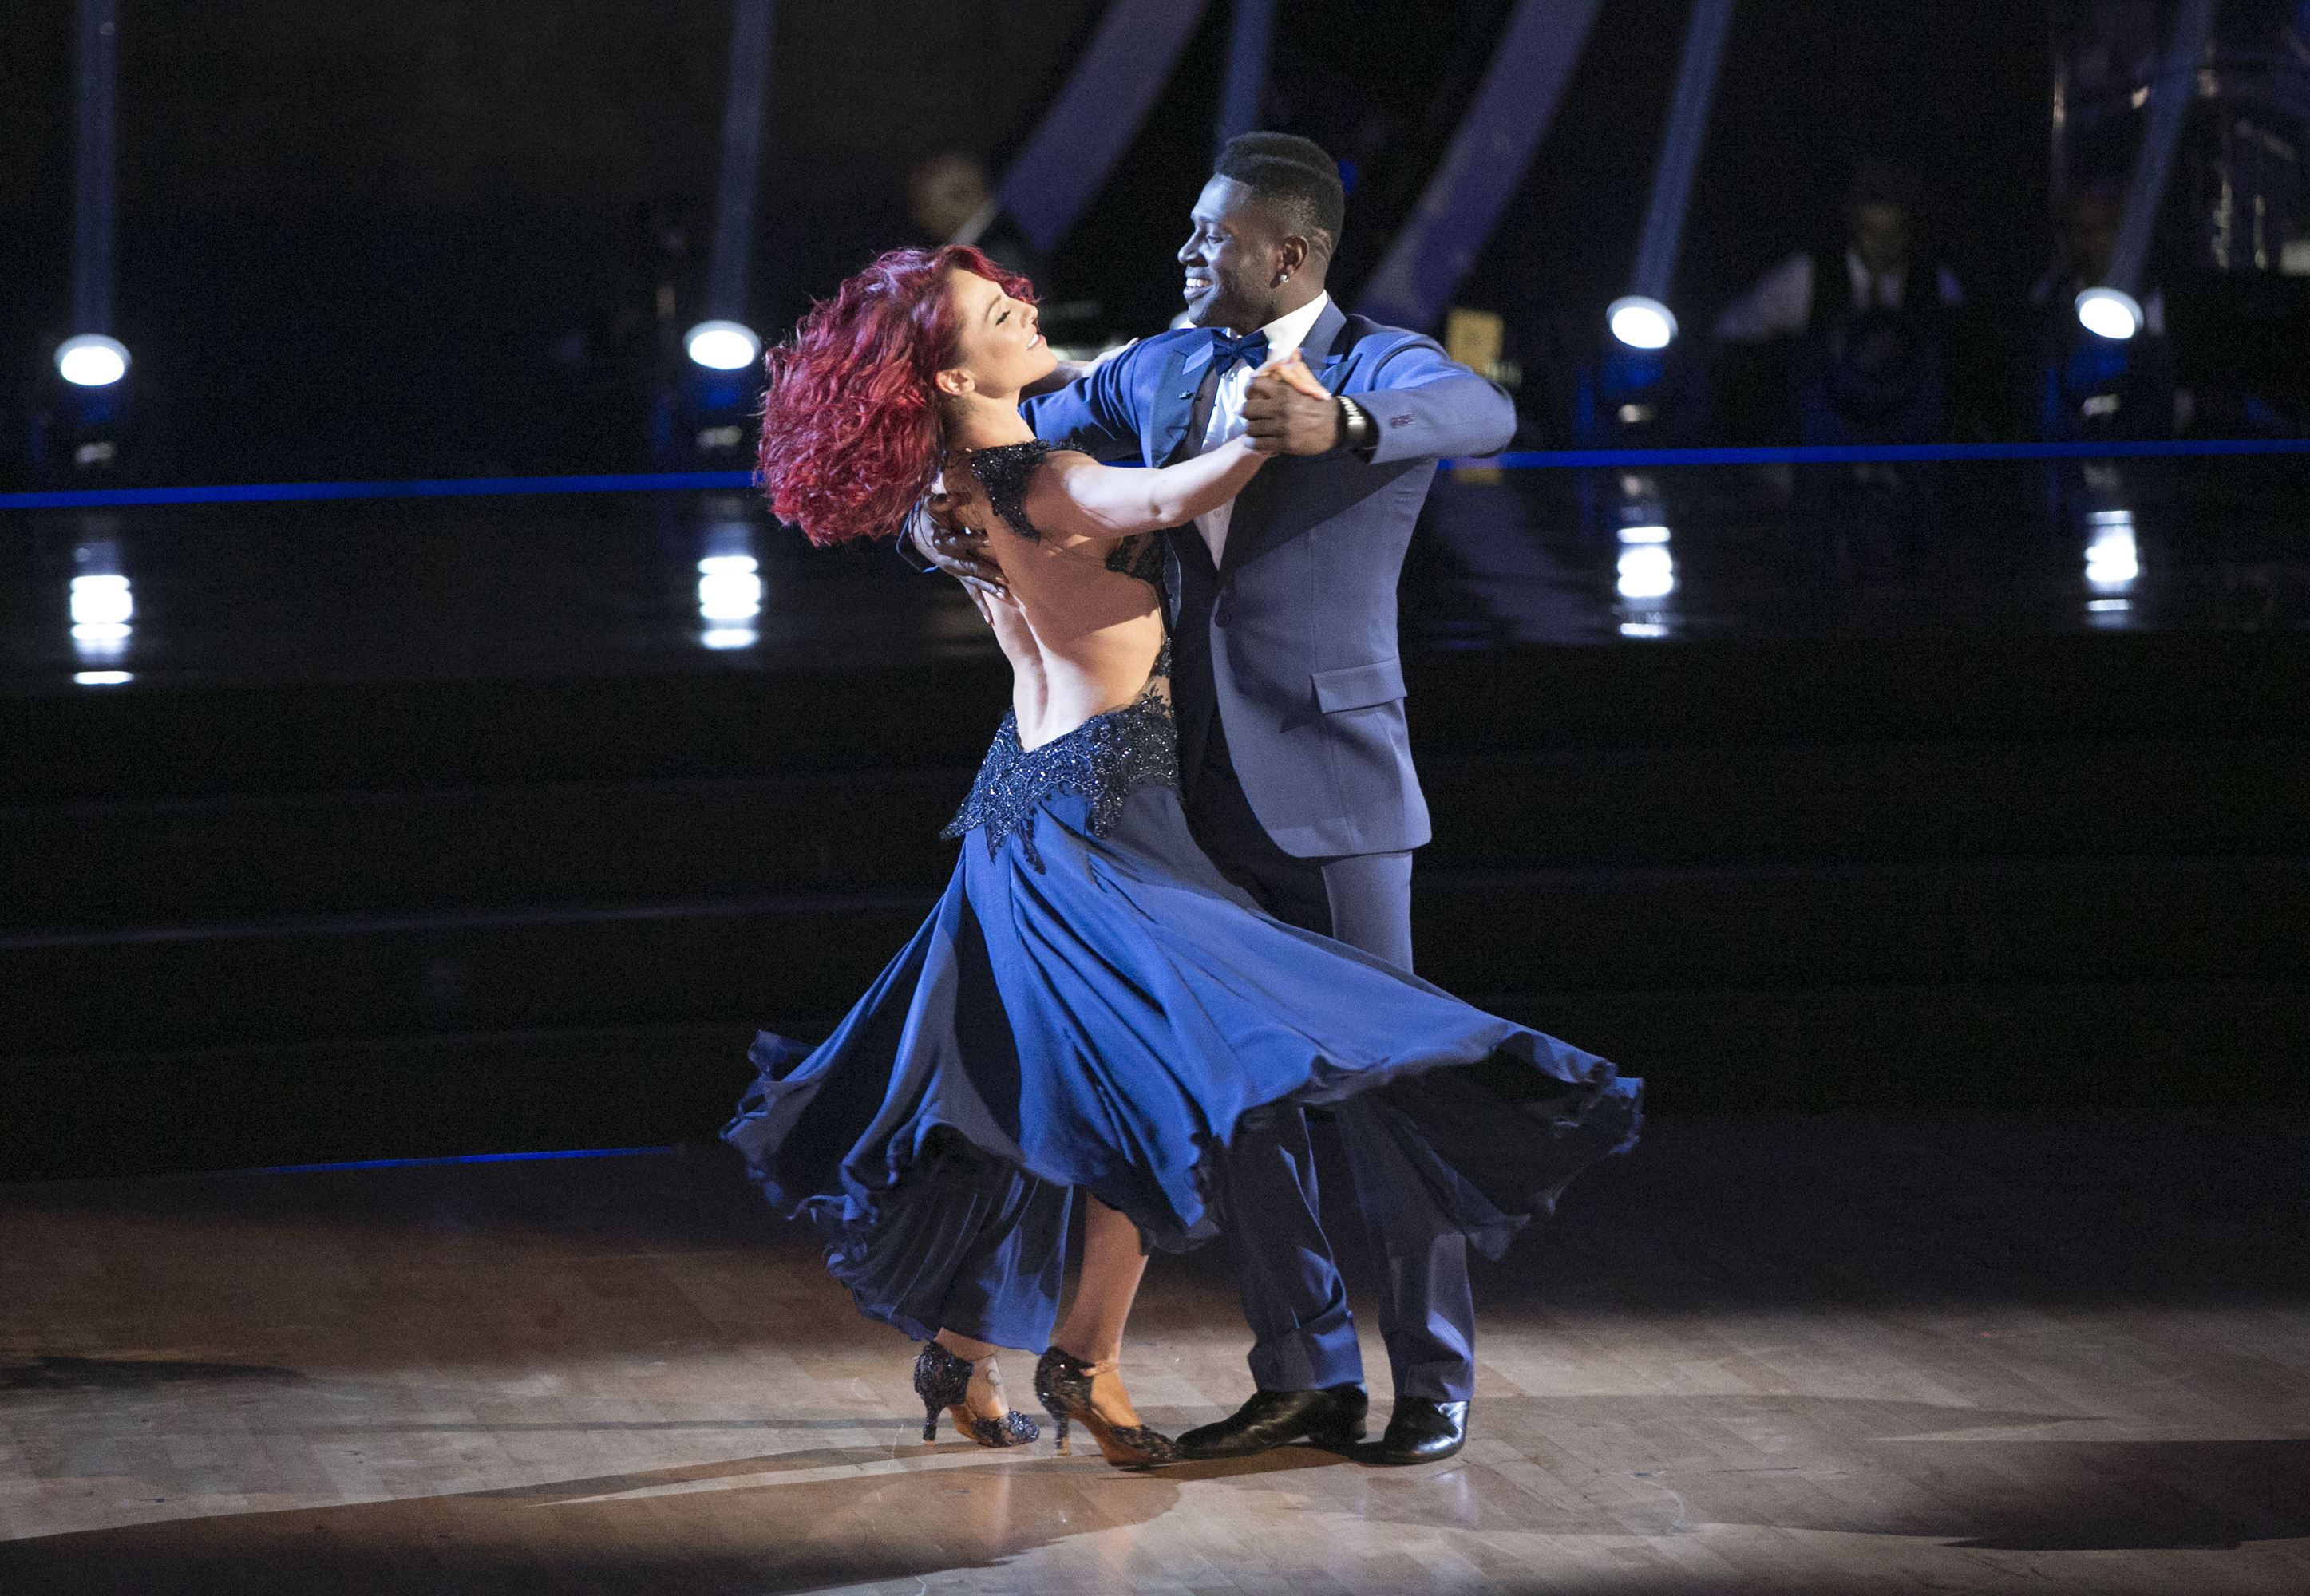 """Steelers' Antonio Brown waltz into """"Dancing With the Stars"""" semifinals"""